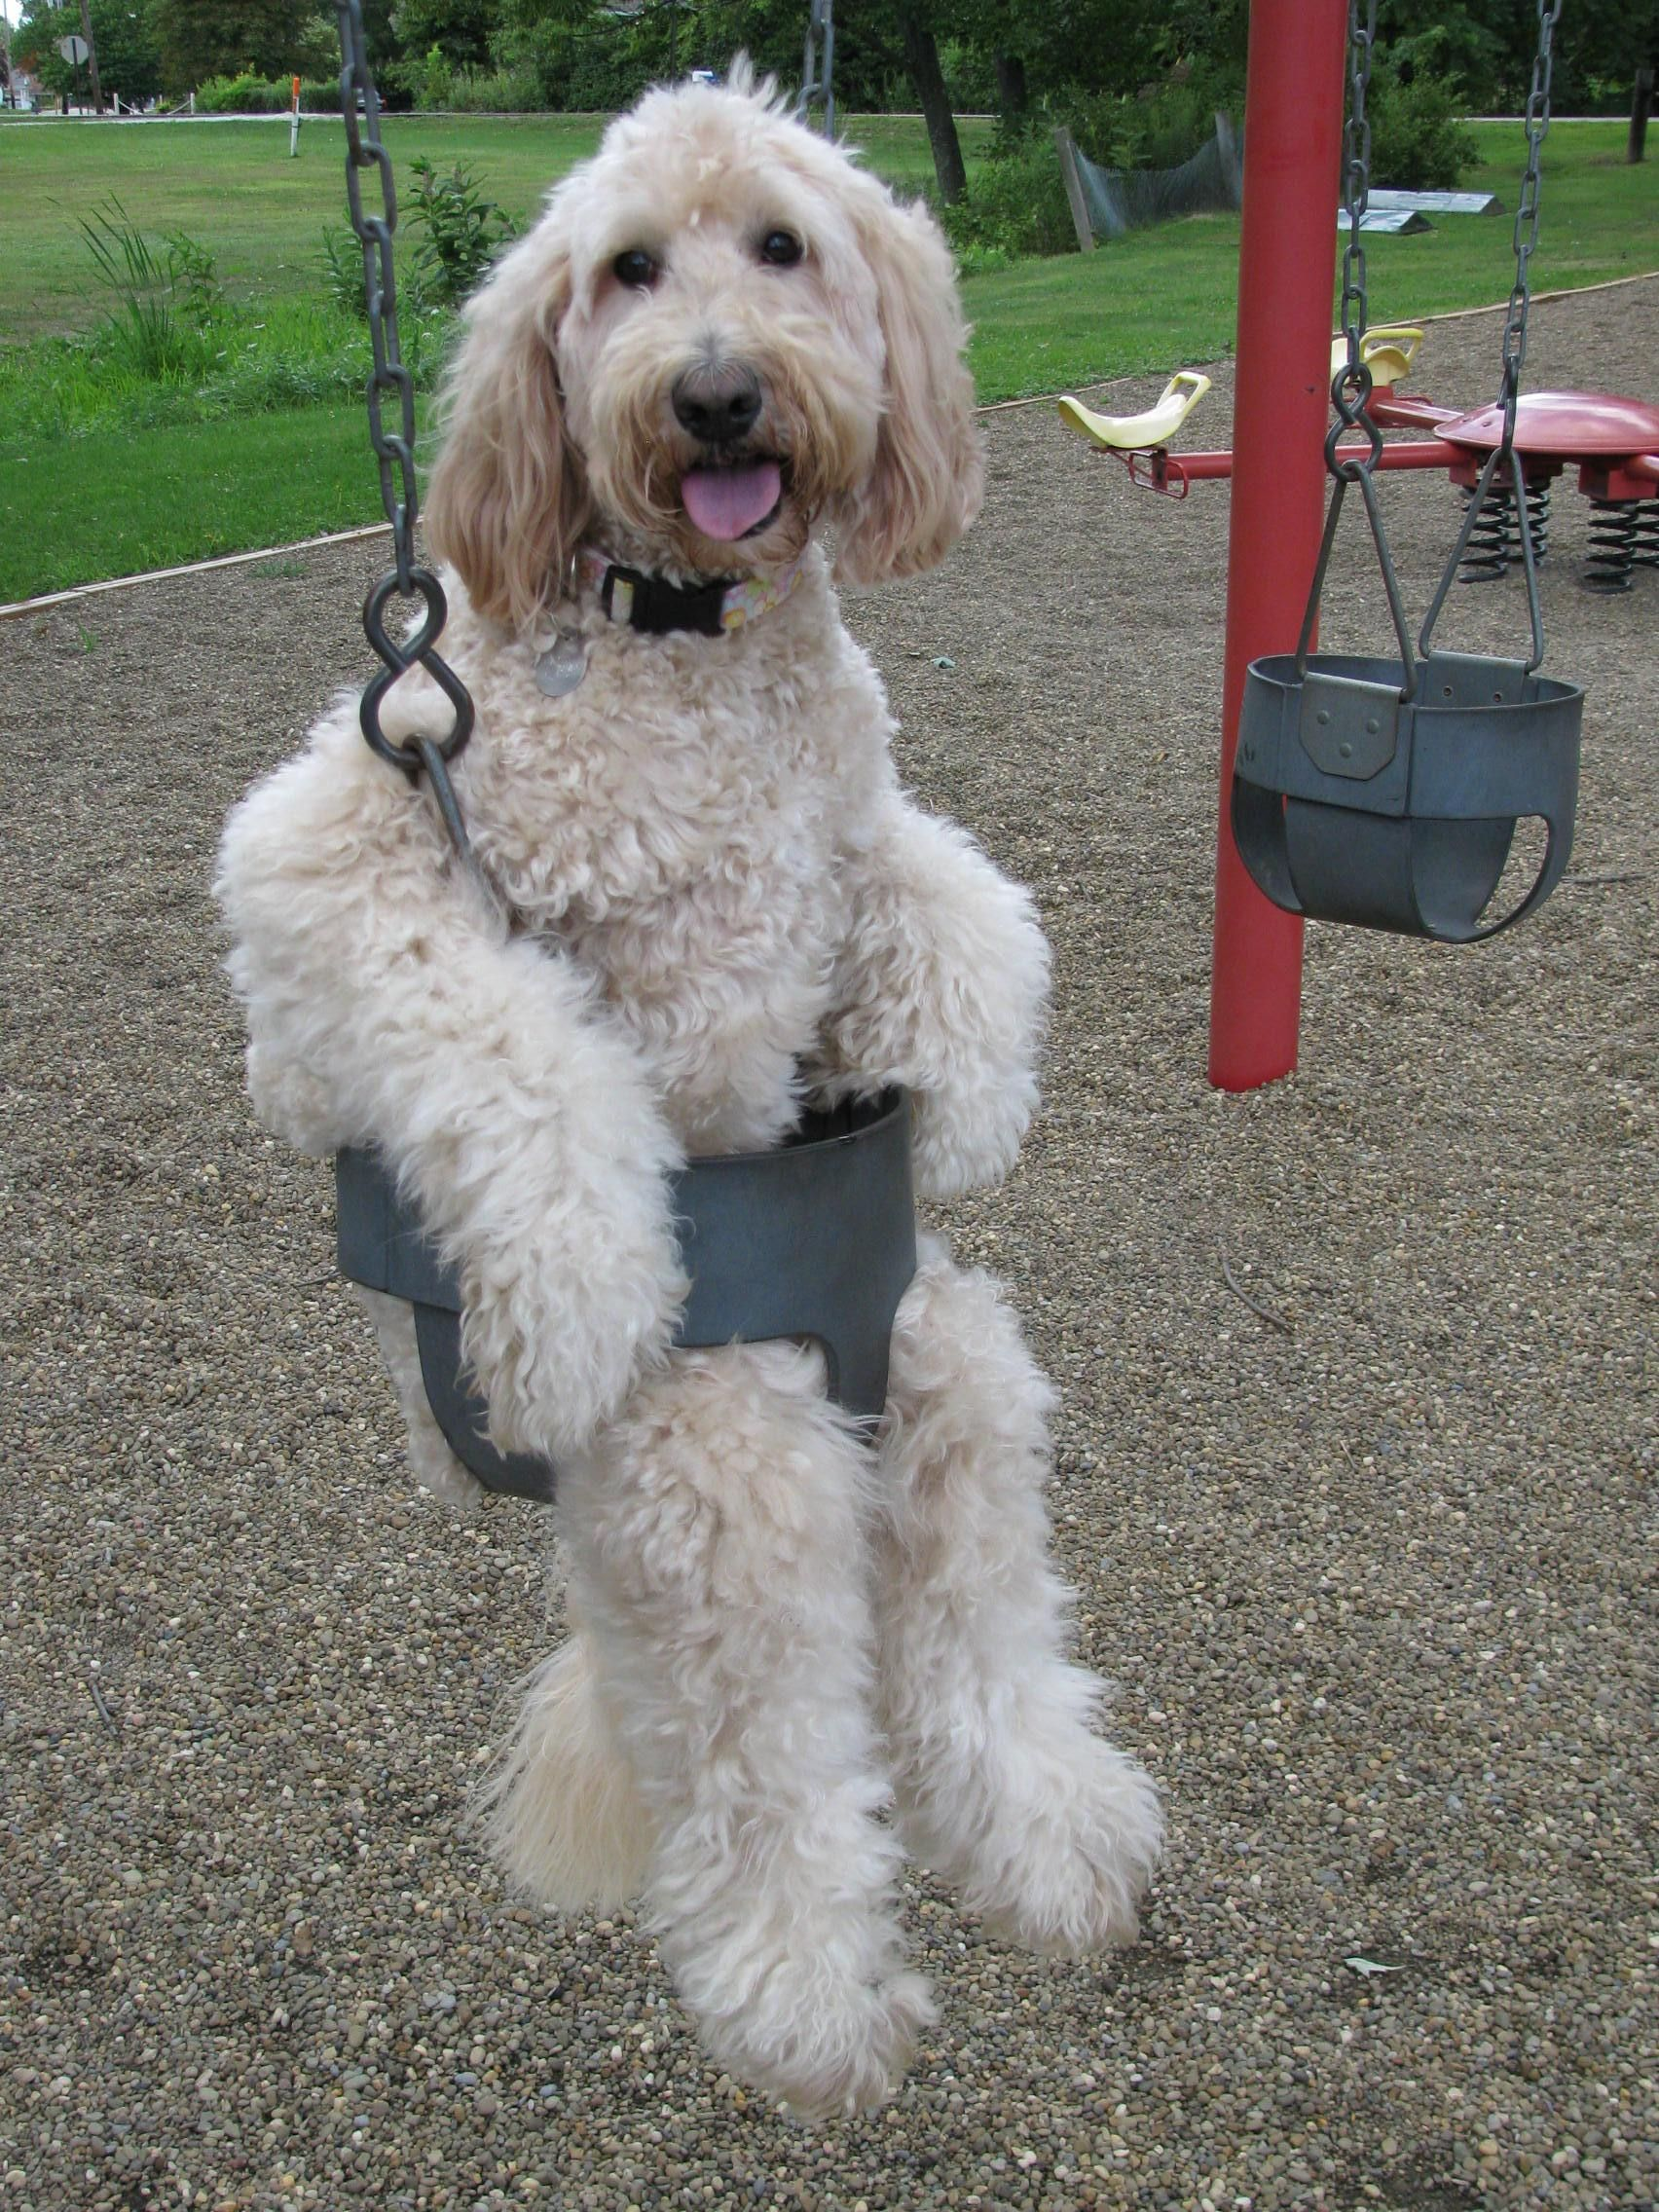 If youre ever feeling down heres a goldendoodle on a